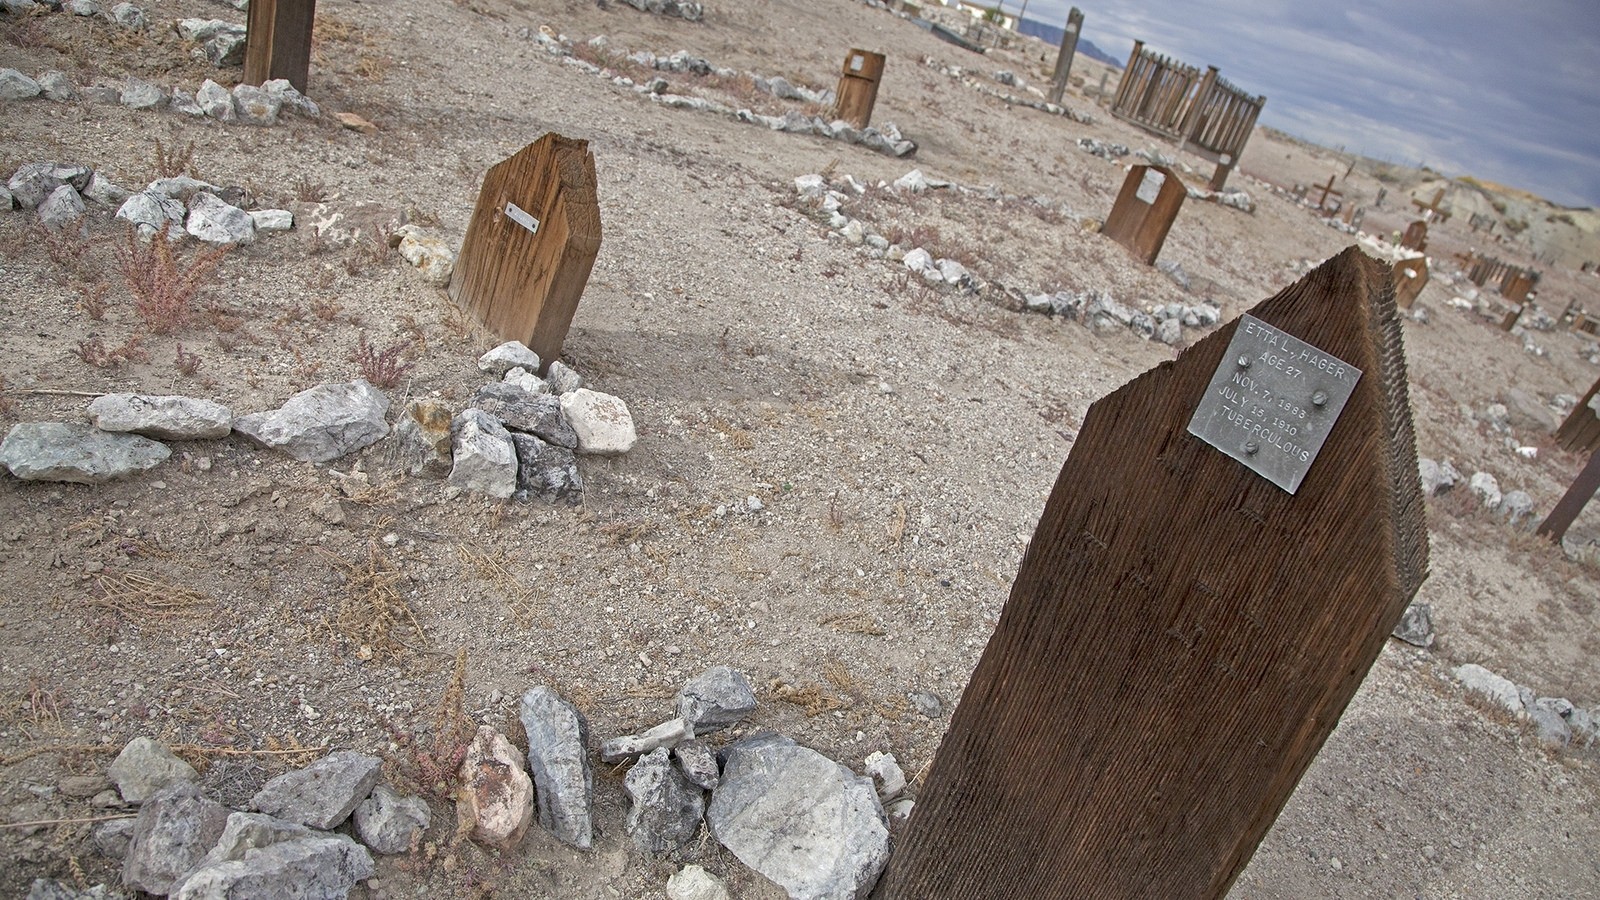 Cemetery next to Clown Motel in Tonopah,Nevada